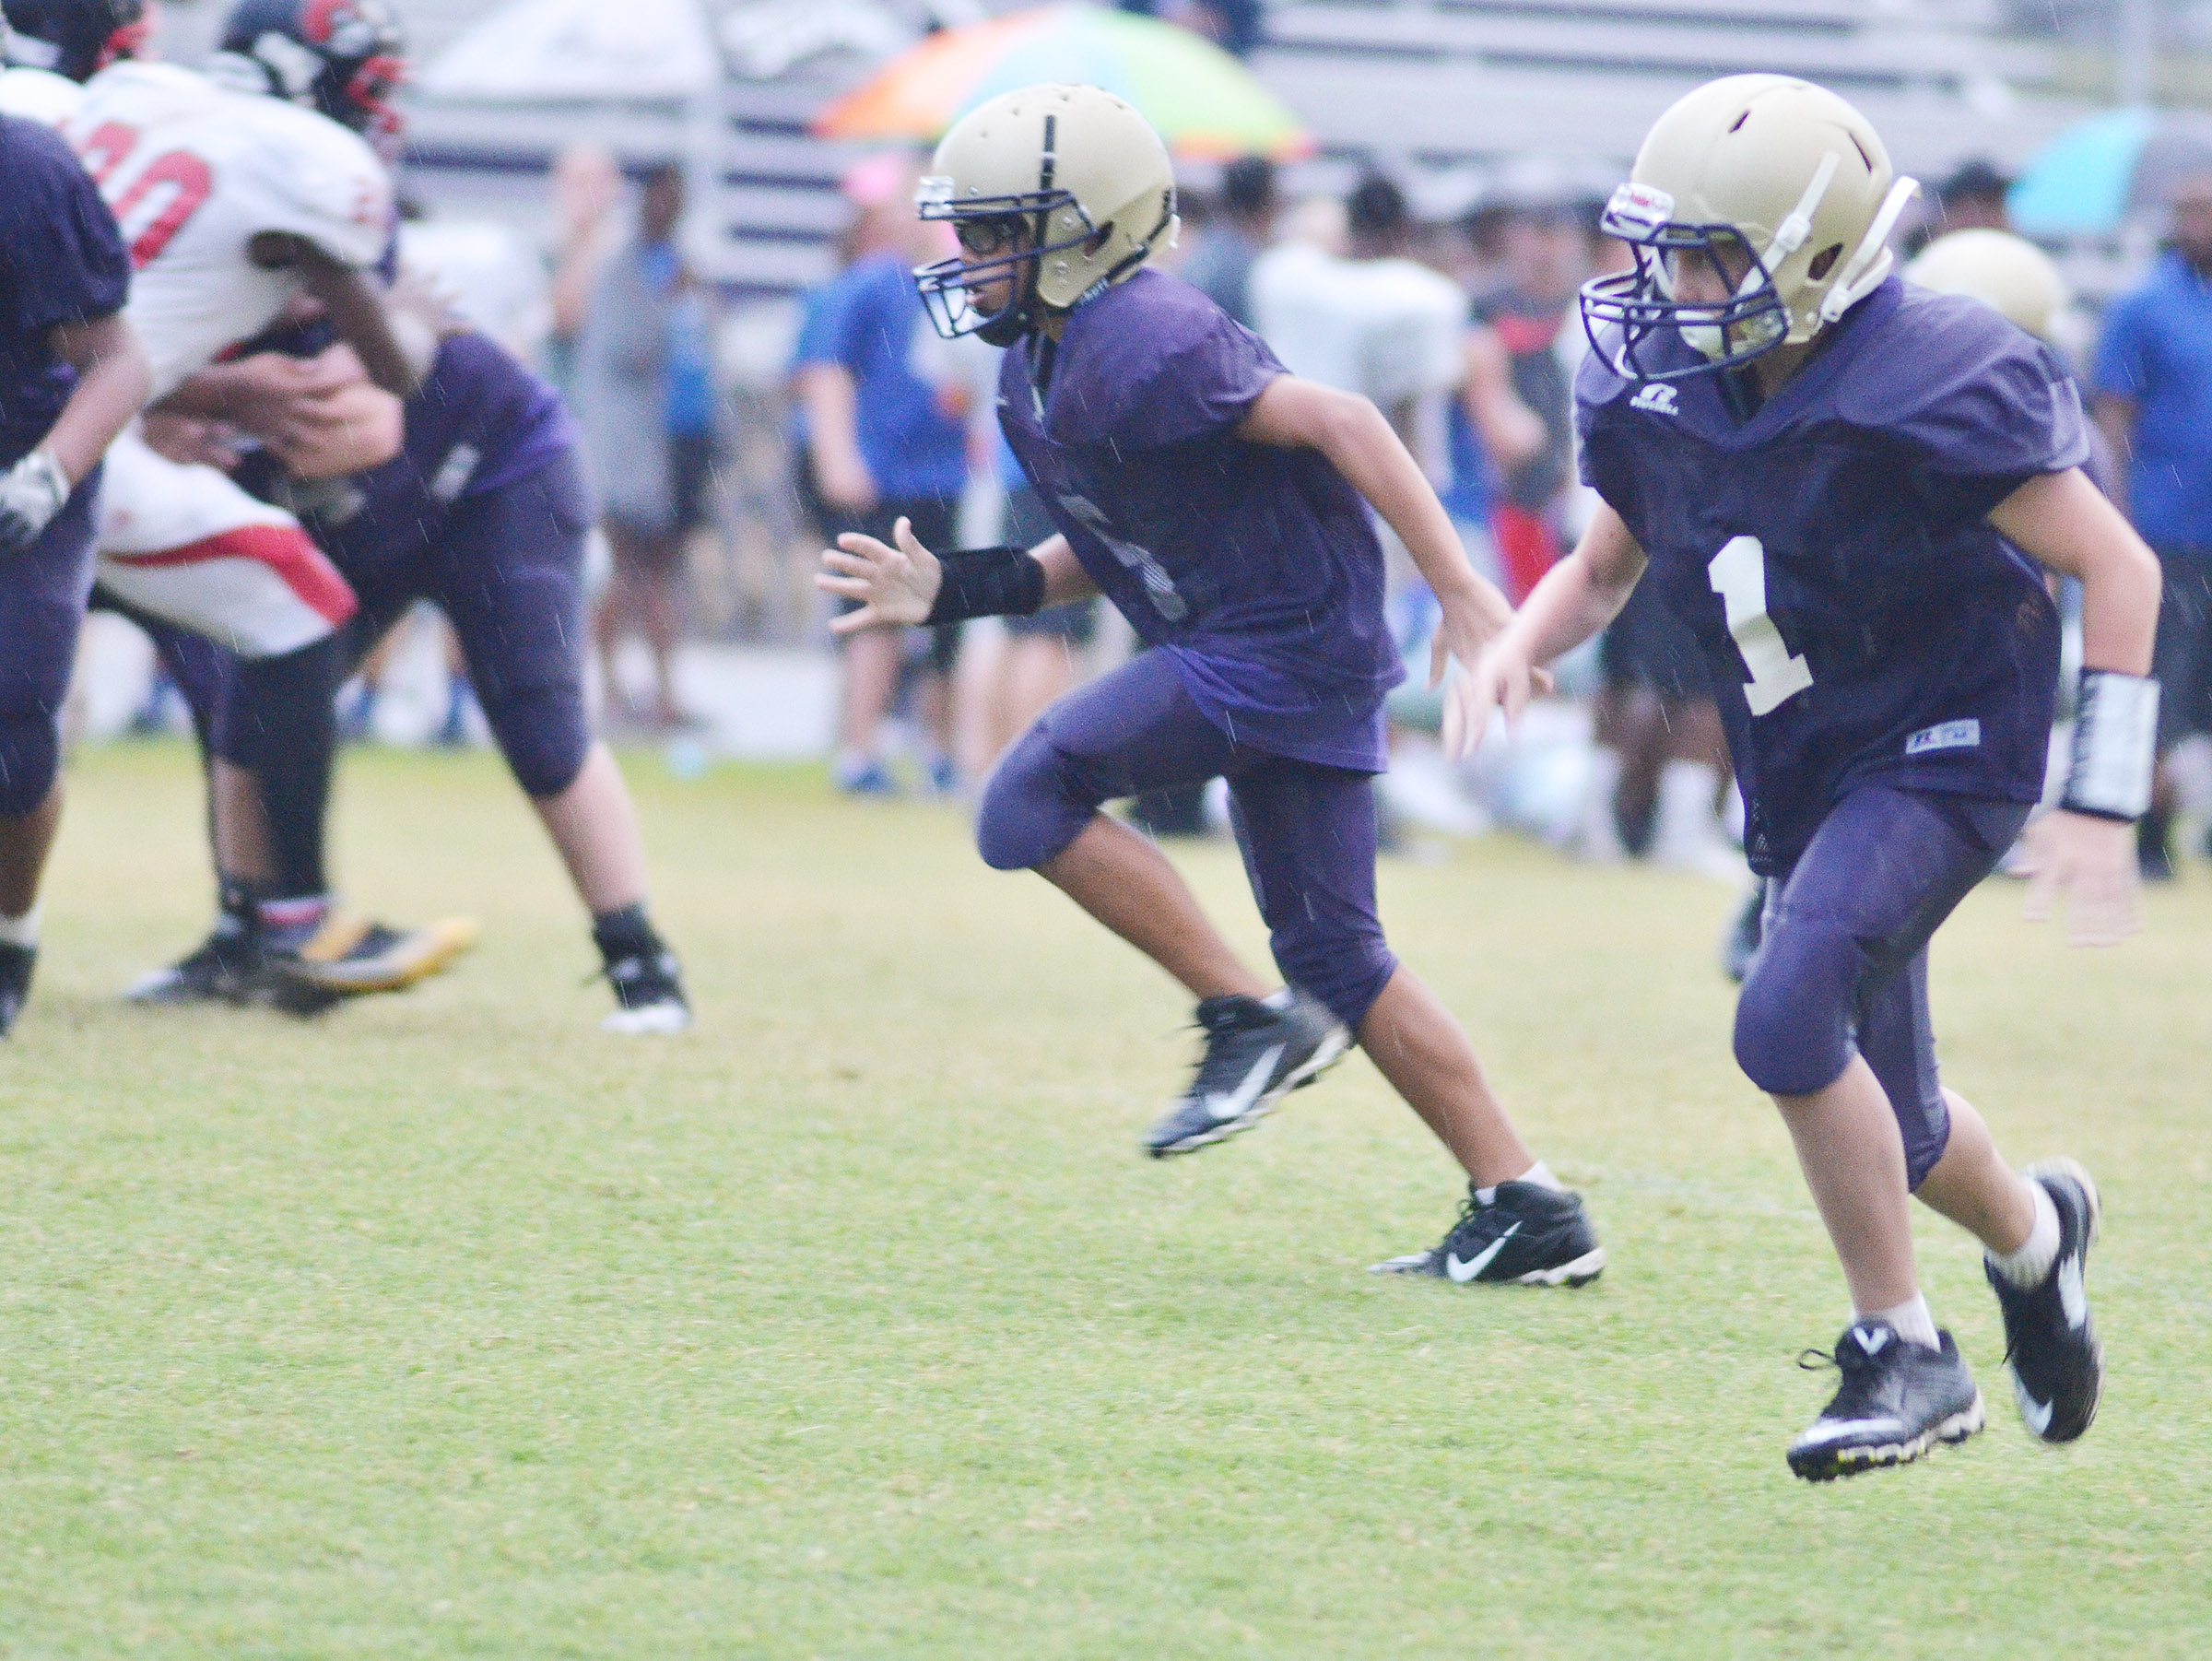 CMS eighth-grader Logan Phillips, at left, and eighth-grader Dakota Harris run.